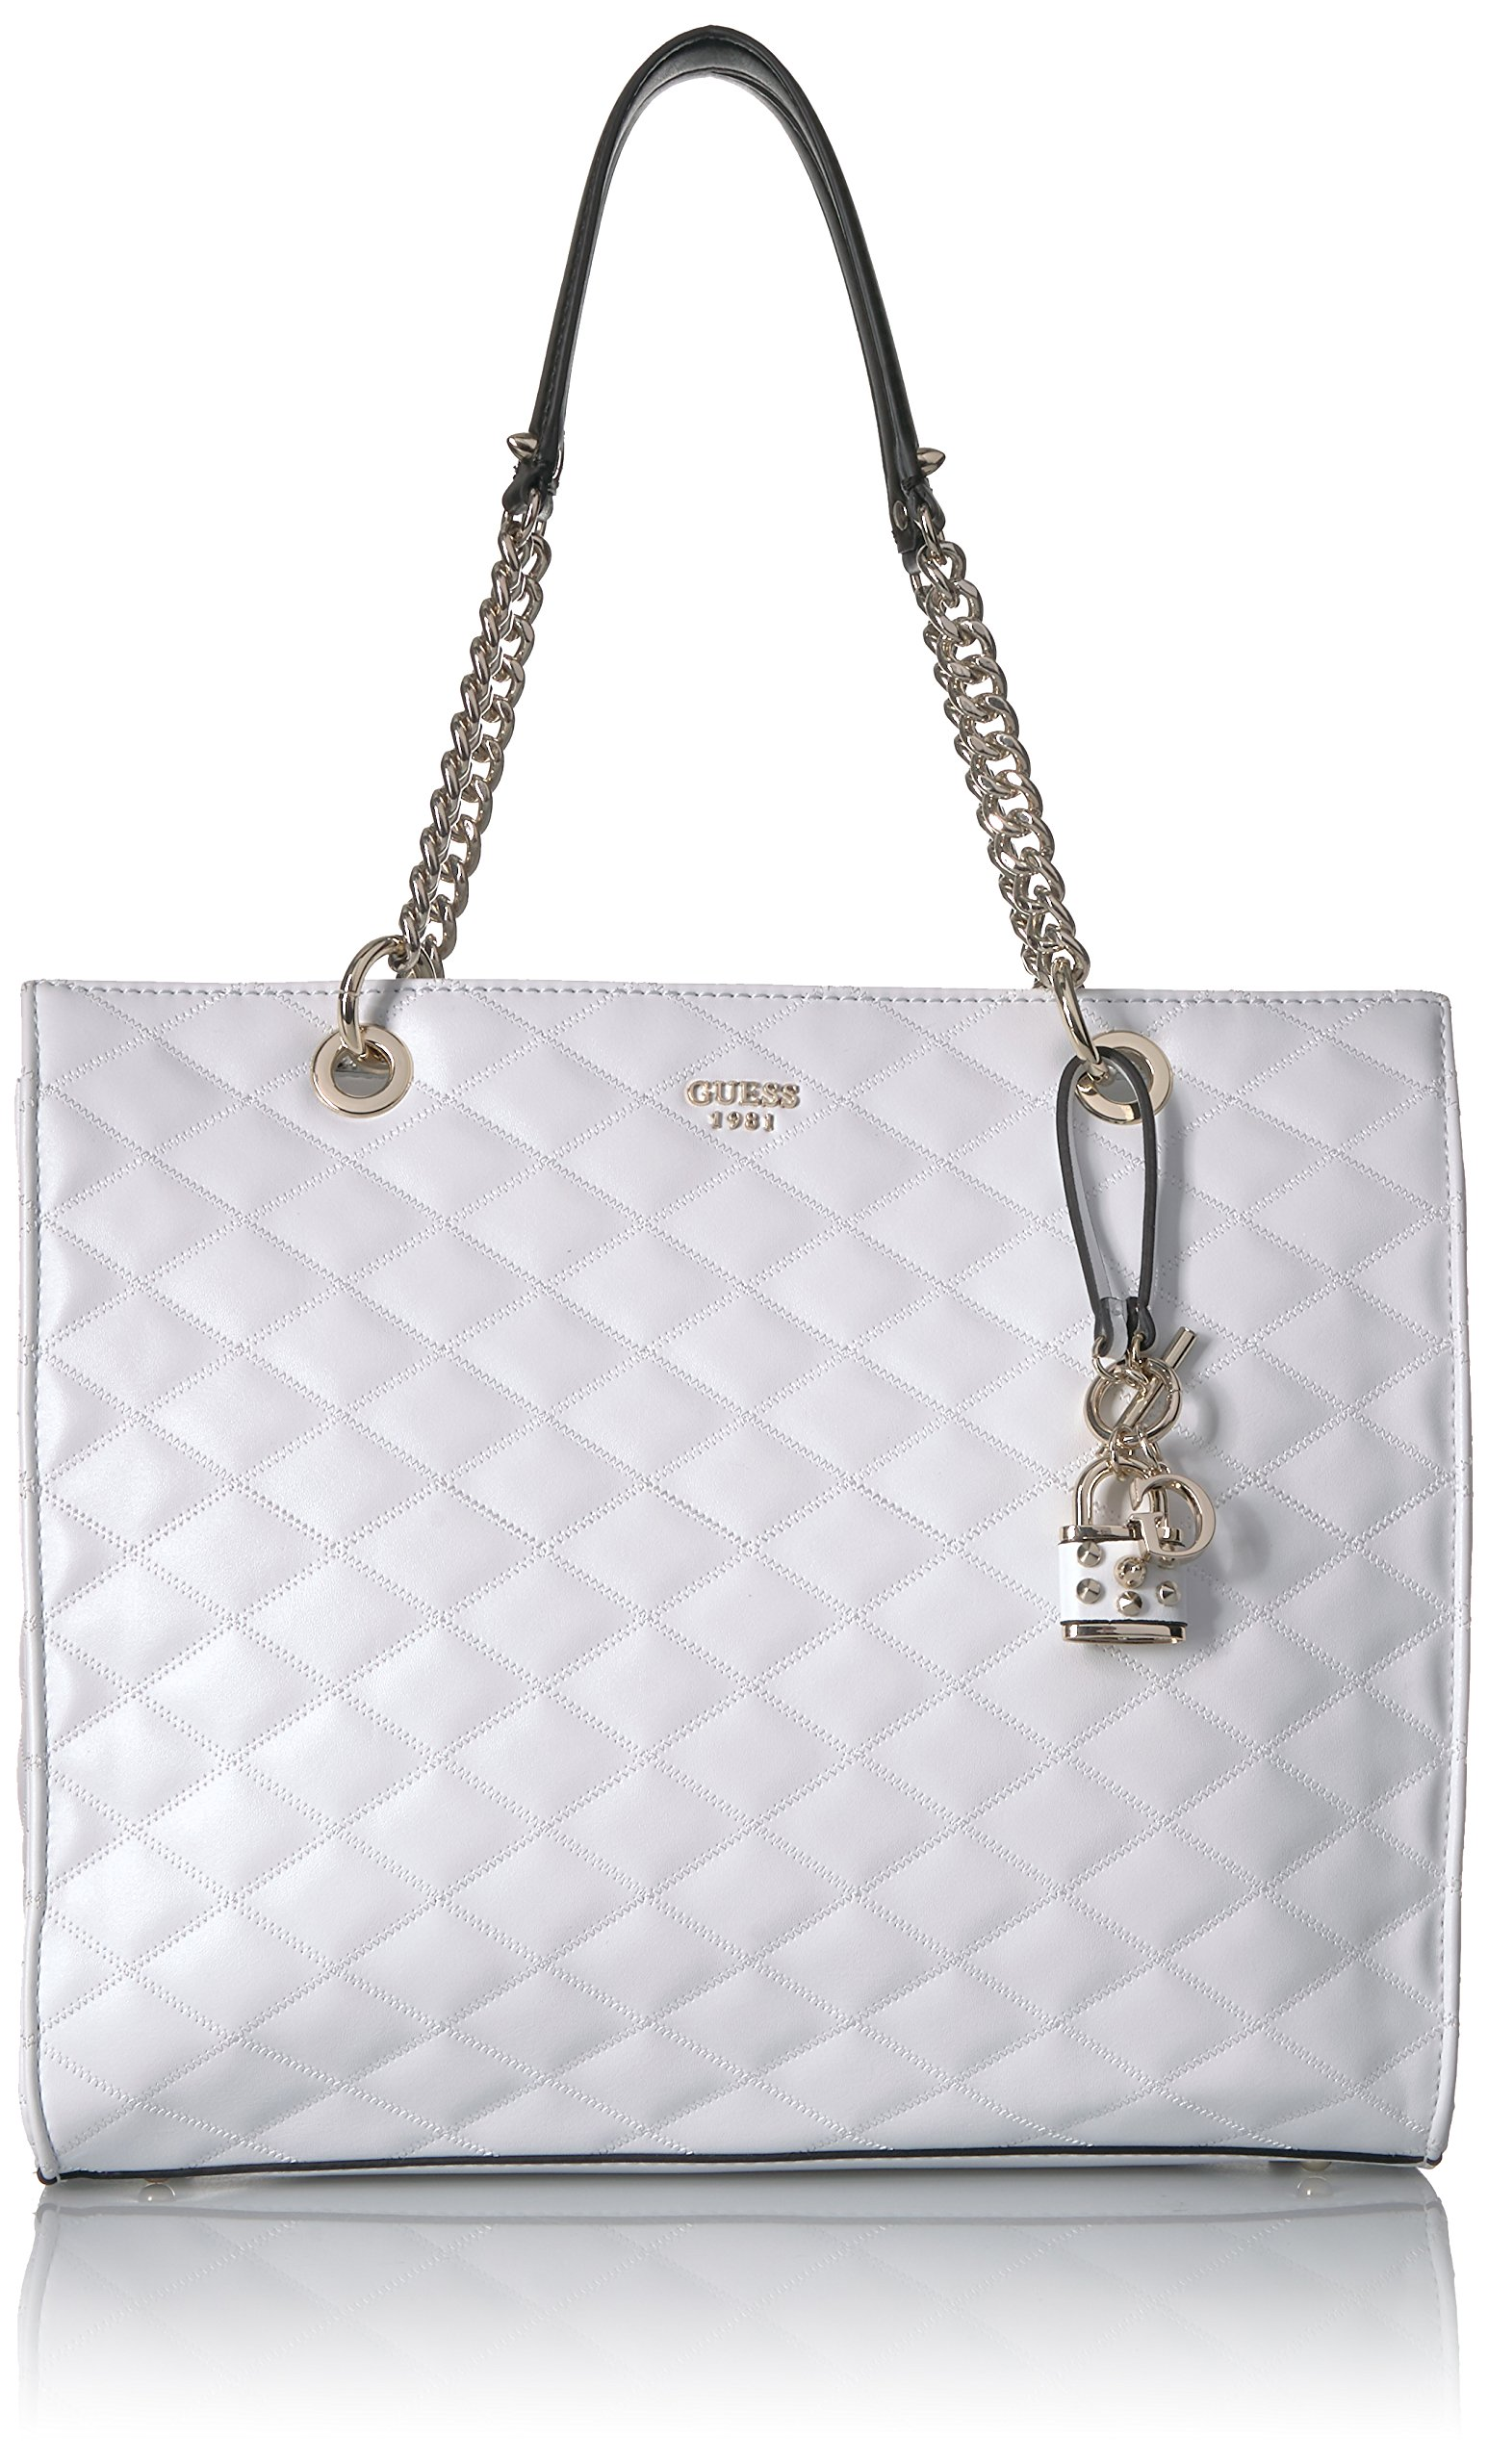 GUESS Penelope Shopper, White